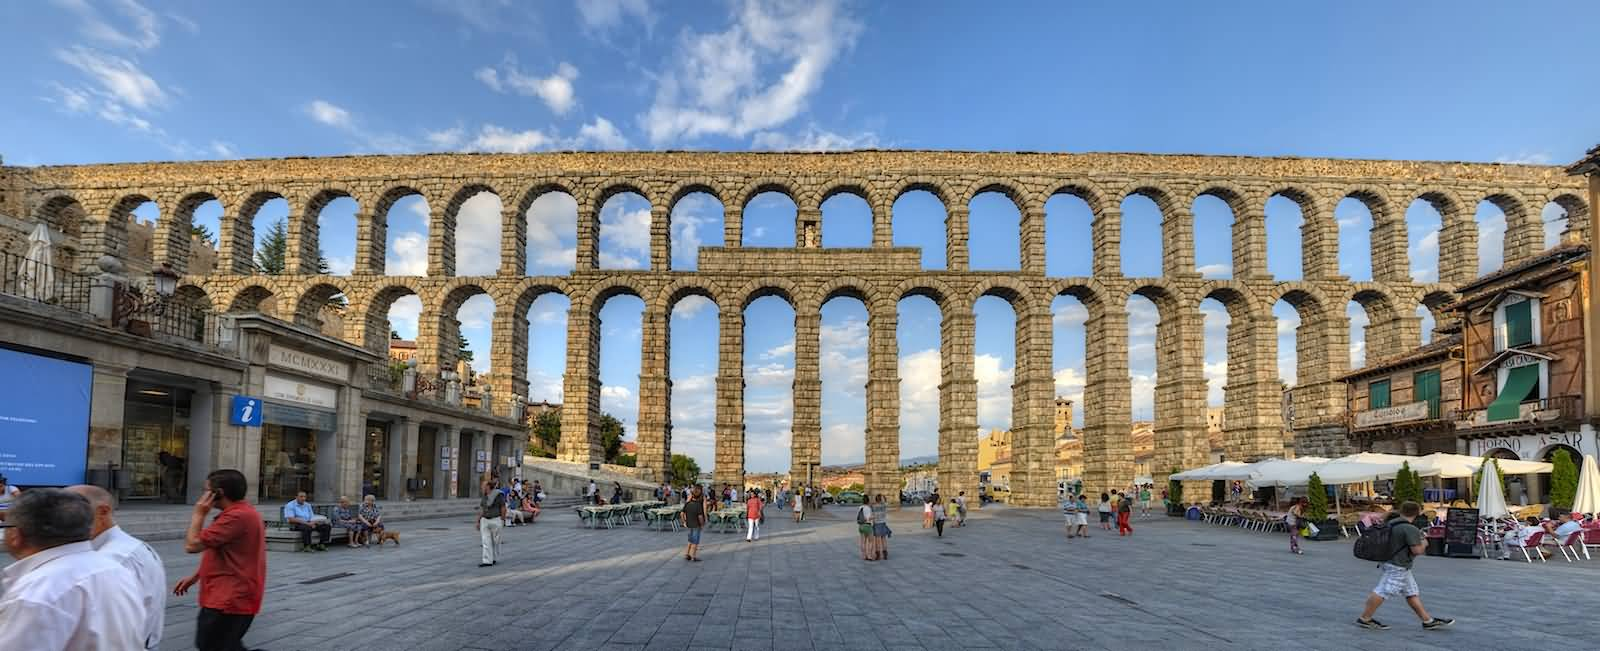 Aqueduct-Of-Segovia, Things to do in Spain